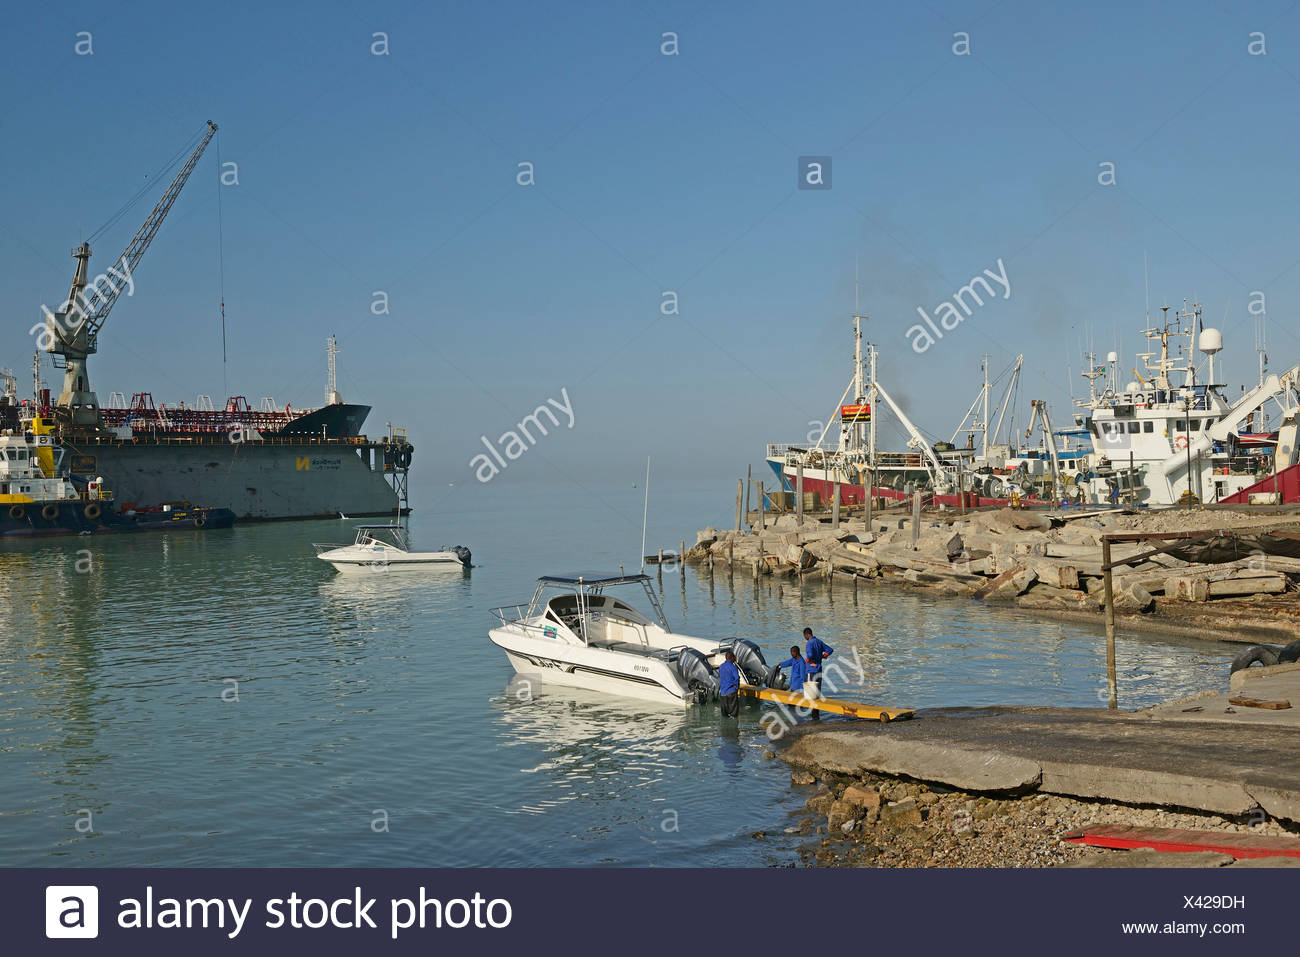 Africa, Namibia, Walvis Bay, Harbor, Harbour - Stock Image